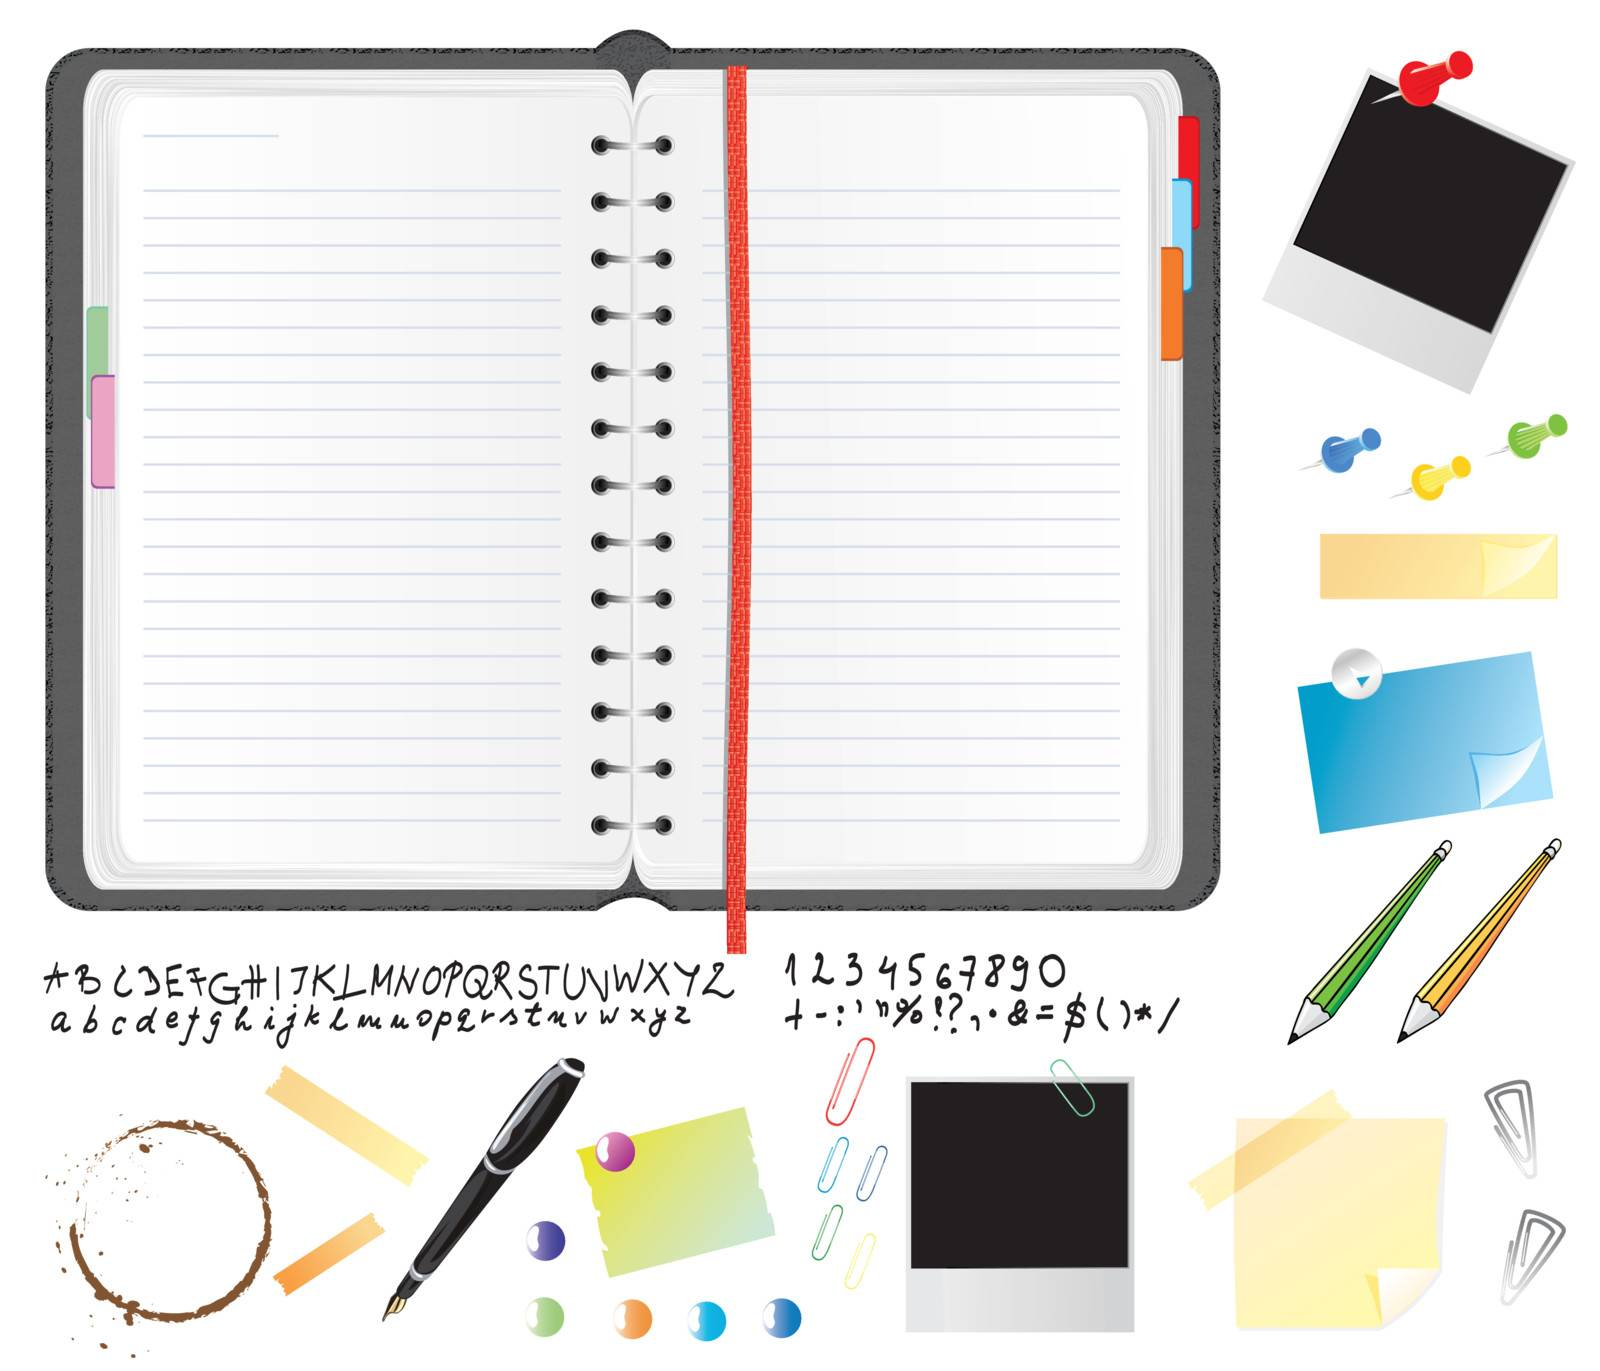 Realistic daily planner with font and stationery items, vector illustration